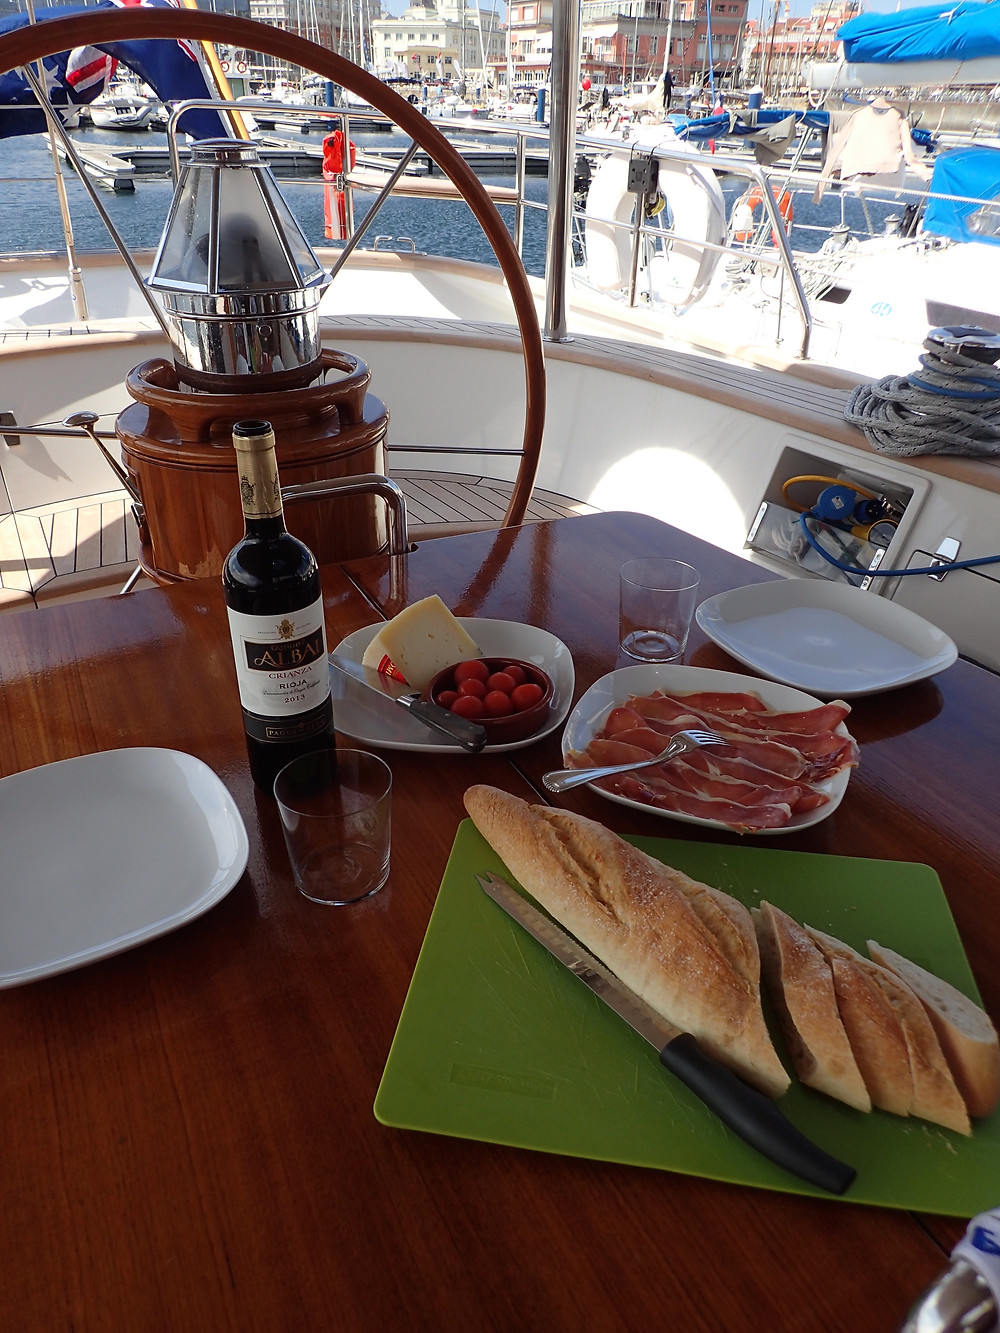 Lunch in the cockpit in A Coruna